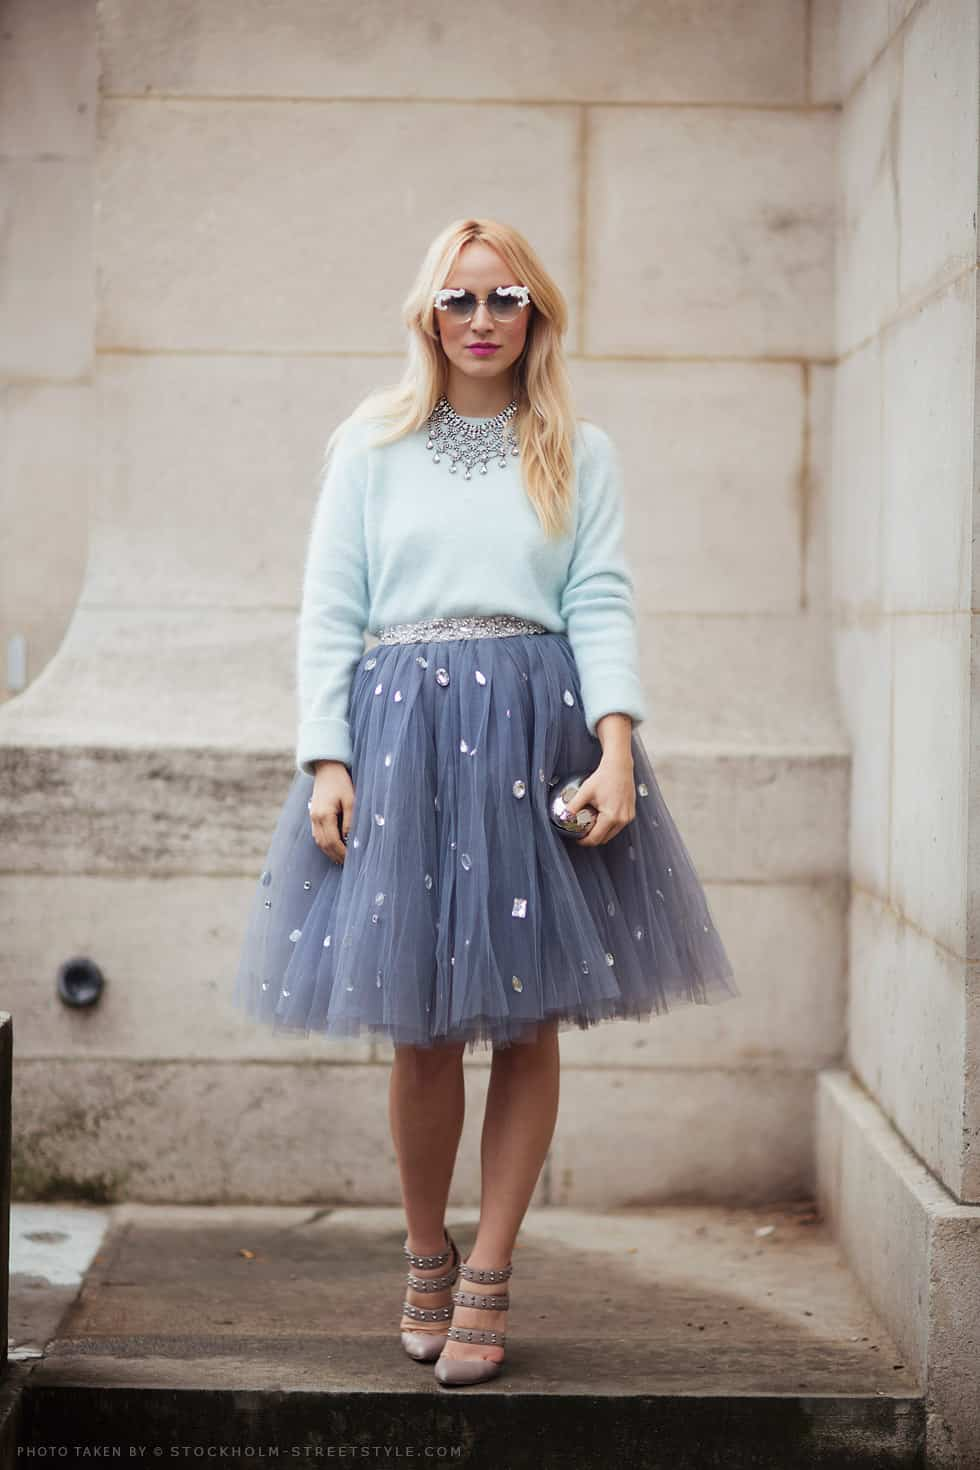 Do Bloggers Have A New Obsession The Tulle Skirt The Fashion Tag Blog